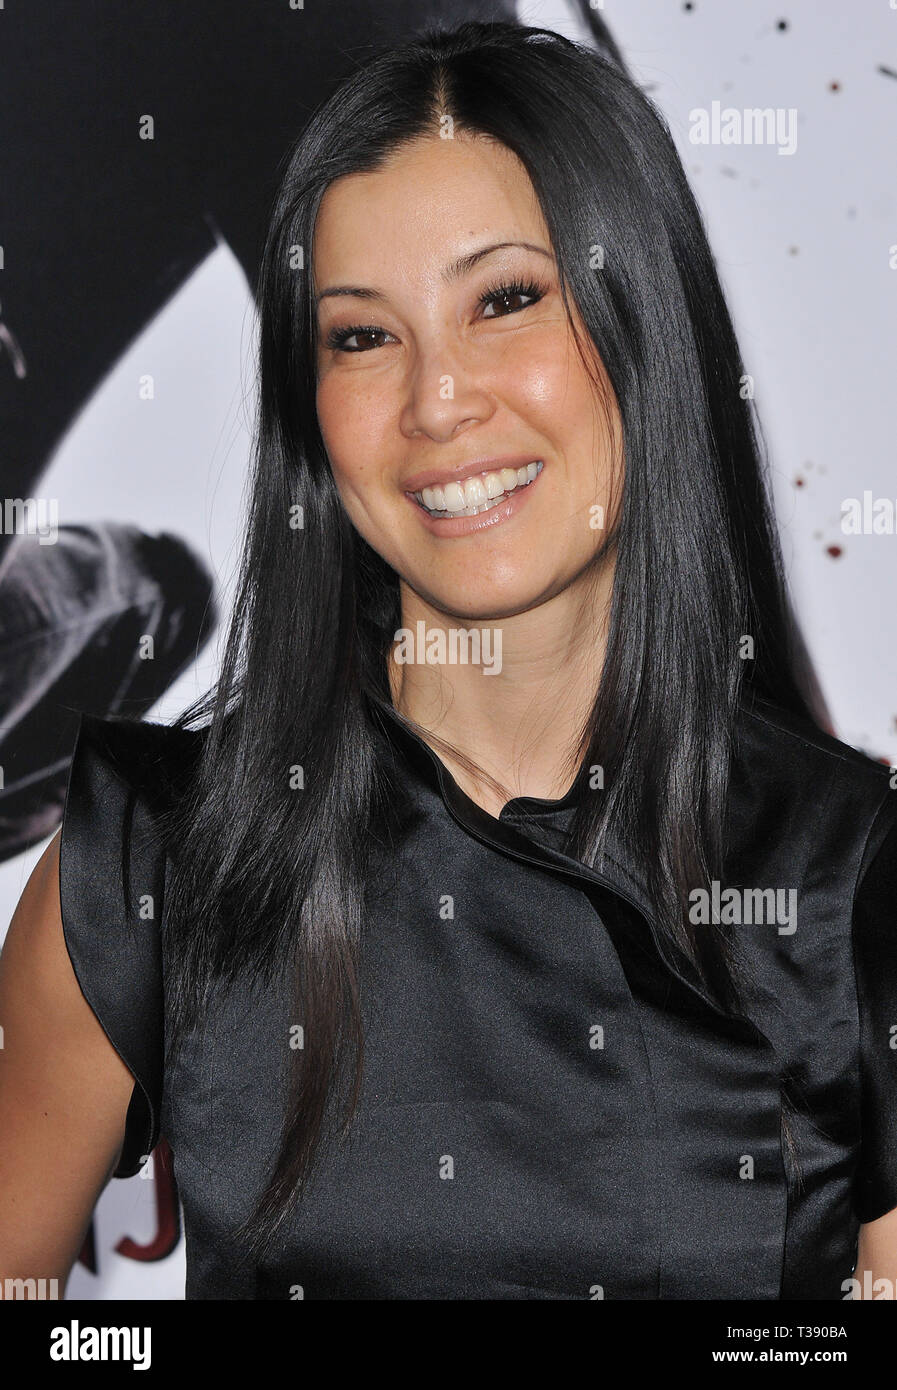 Lisa Ling - NINJA ASSASSIN Premiere at GraumanÕs Chinese Theatre In Los Angeles.Ling Lisa82 Red Carpet Event, Vertical, USA, Film Industry, Celebrities,  Photography, Bestof, Arts Culture and Entertainment, Topix Celebrities fashion /  Vertical, Best of, Event in Hollywood Life - California,  Red Carpet and backstage, USA, Film Industry, Celebrities,  movie celebrities, TV celebrities, Music celebrities, Photography, Bestof, Arts Culture and Entertainment,  Topix, headshot, vertical, one person,, from the year , 2009, inquiry tsuni@Gamma-USA.com - Stock Image